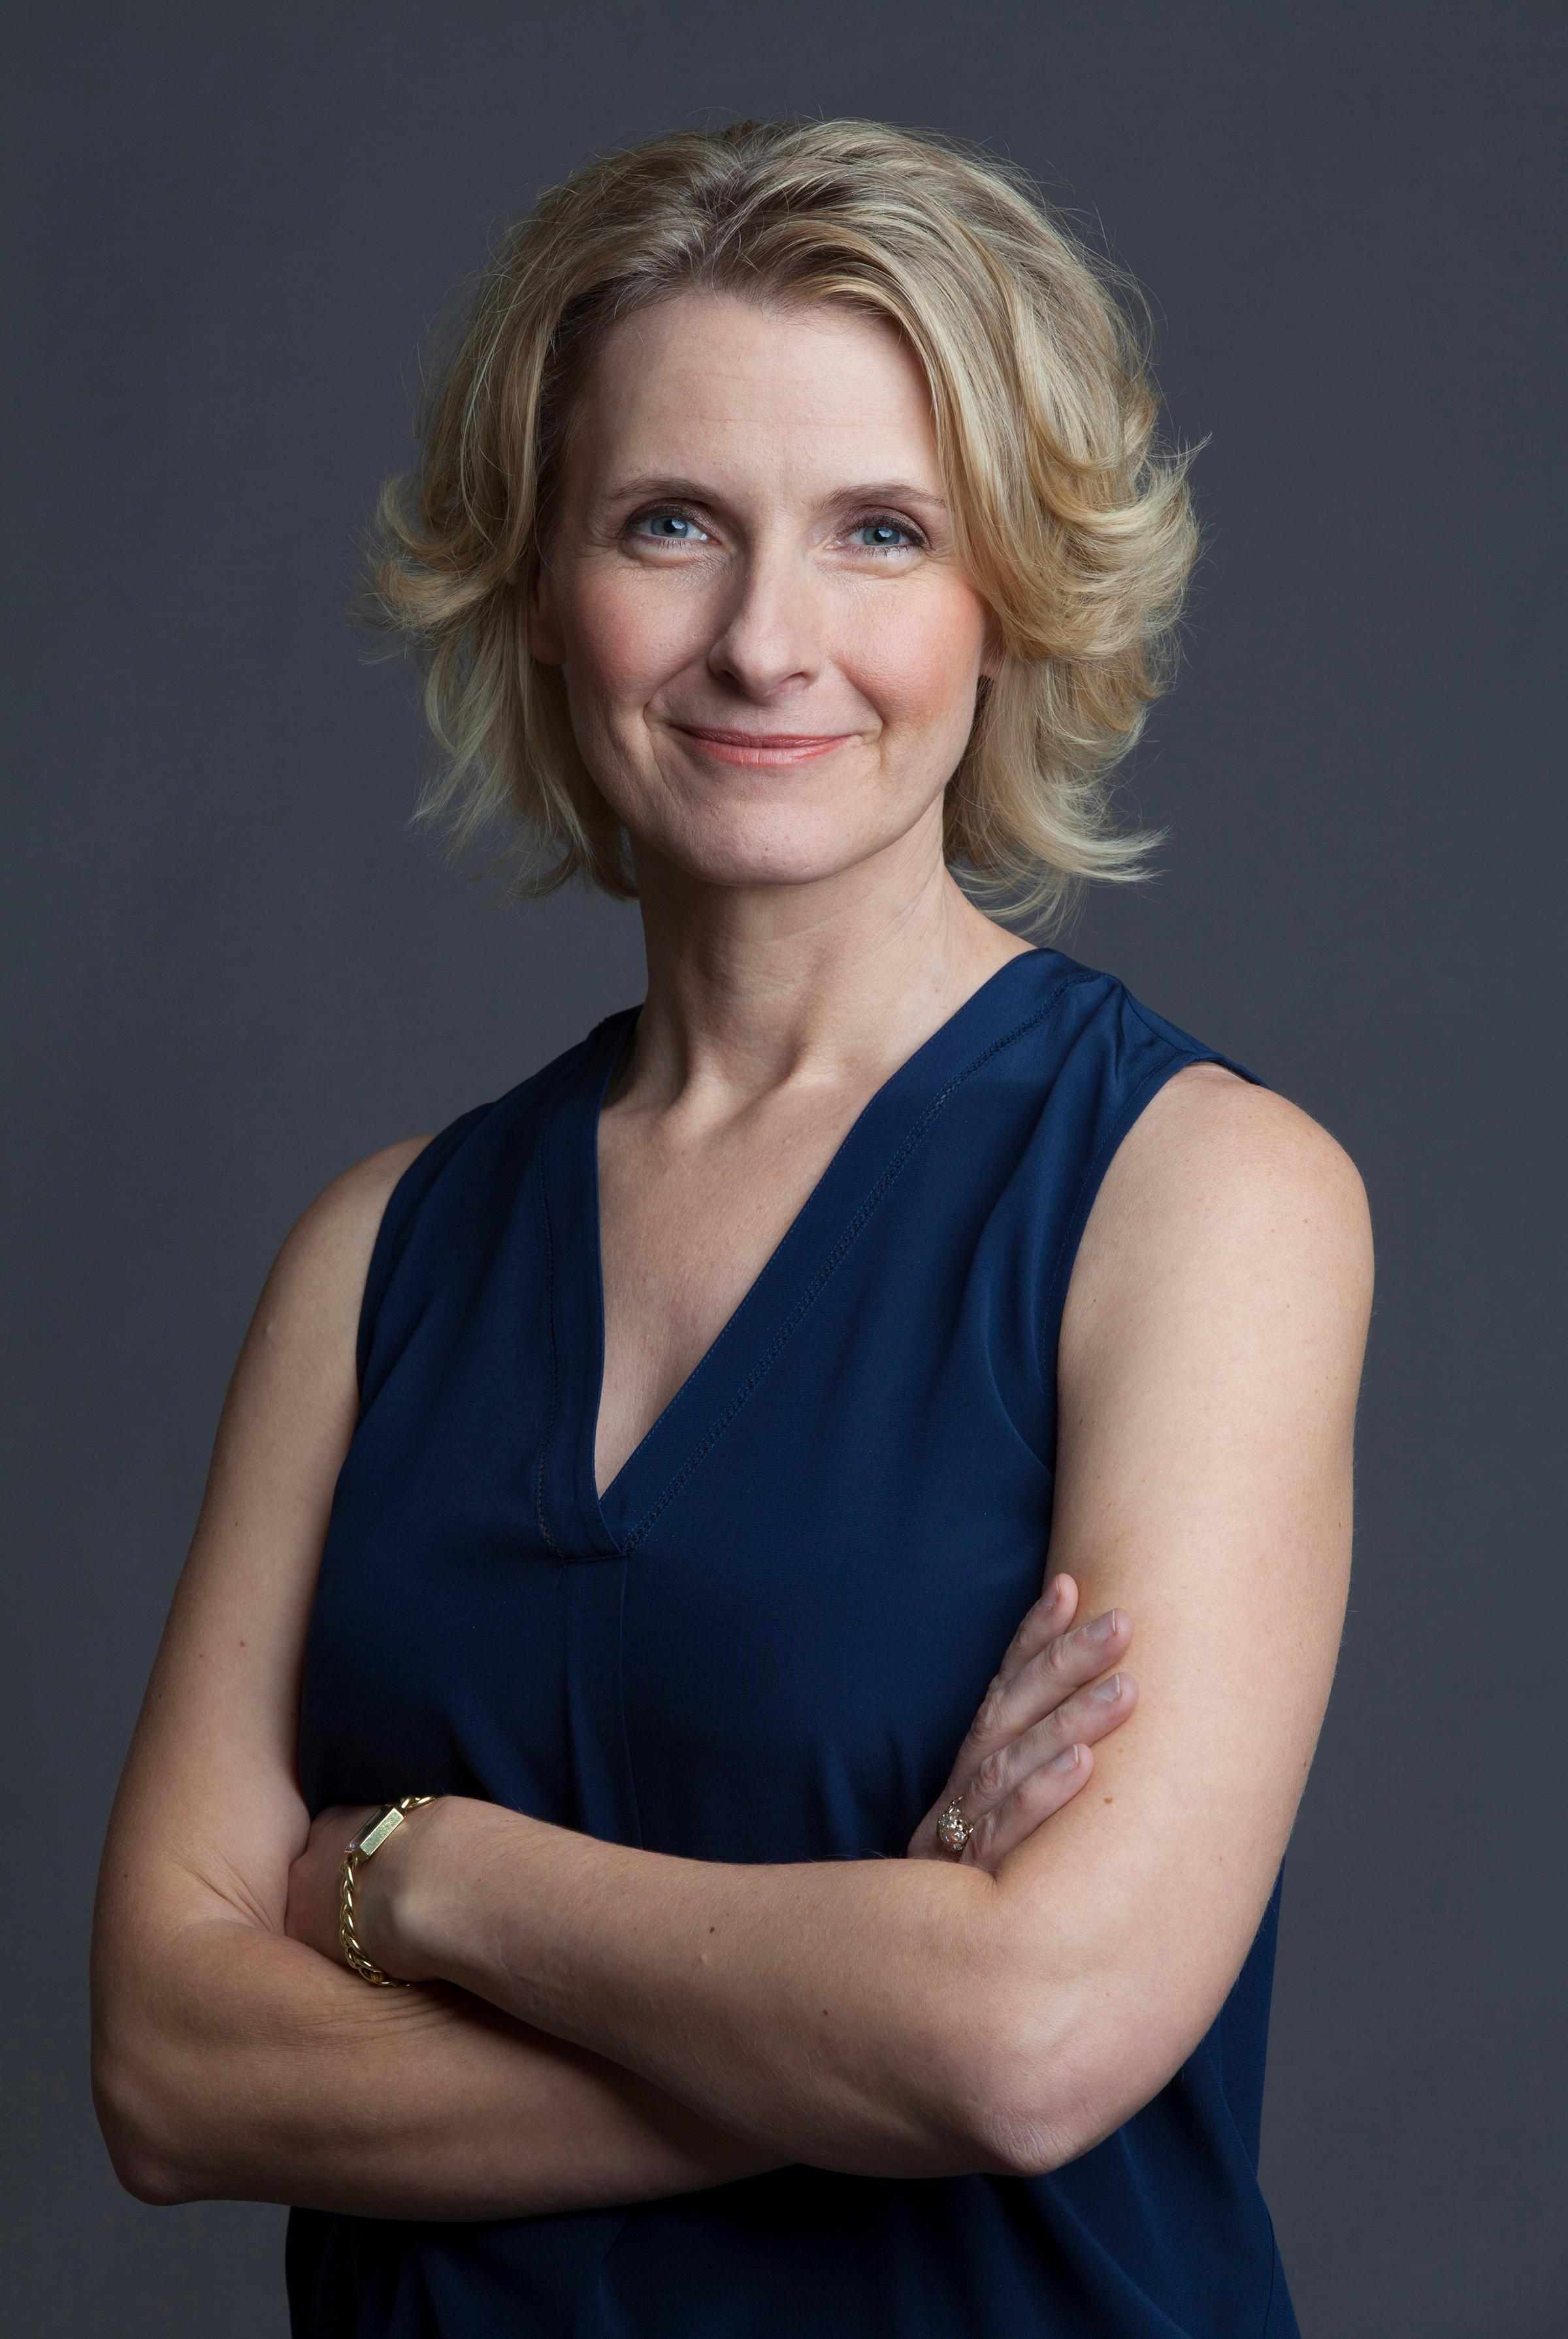 Author Elizabeth Gilbert (Image: Timothy Greenfield-Sanders){&amp;nbsp;}<p></p>